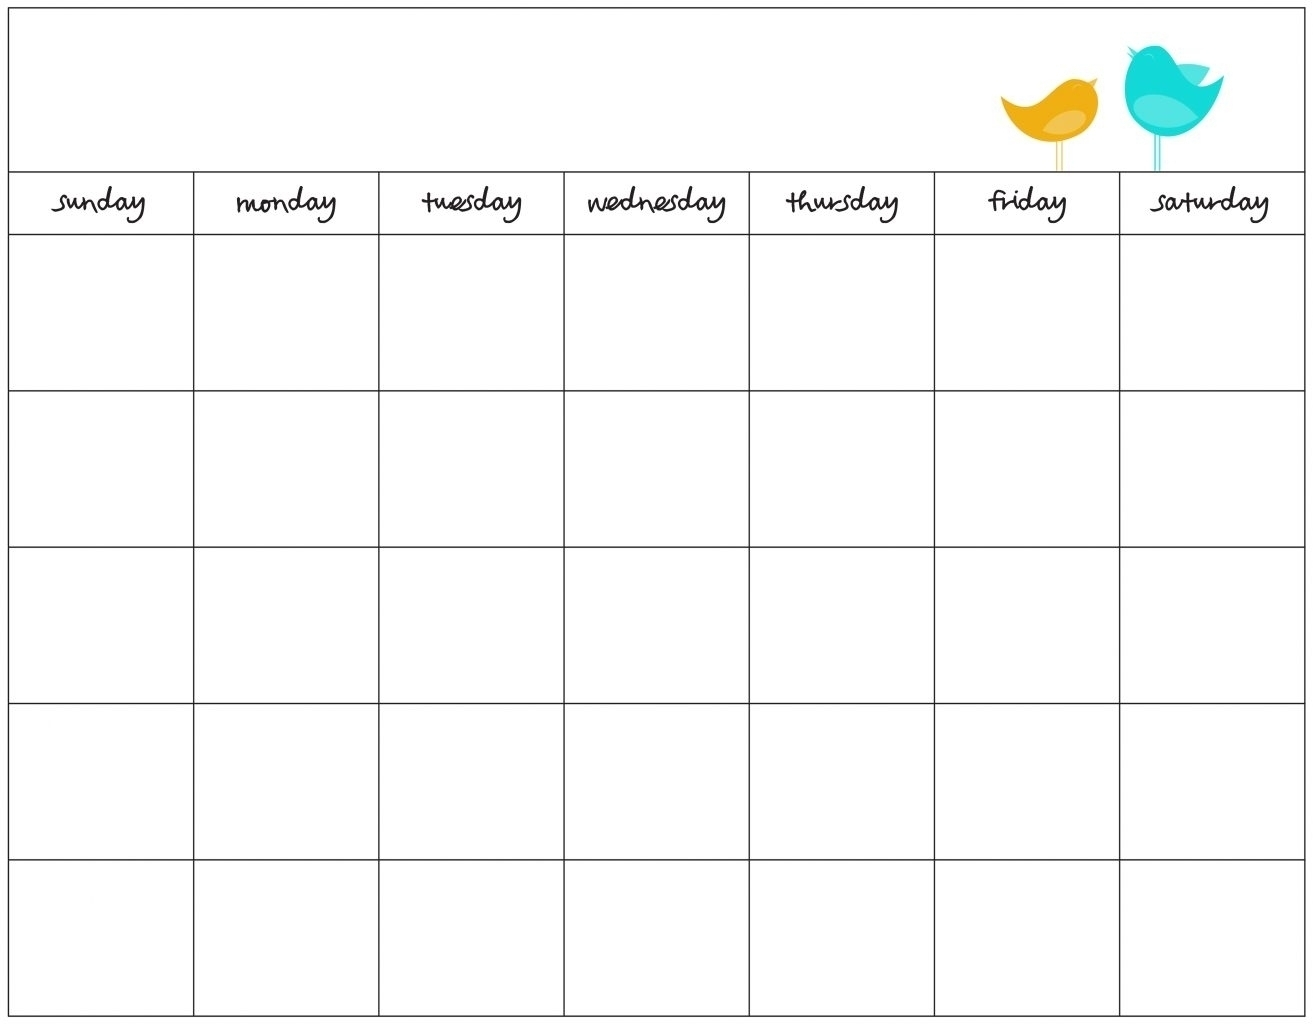 Free Day Blank Calendar Week Template Ble | Smorad with Free Printable Template For Day Of The Week Schedule